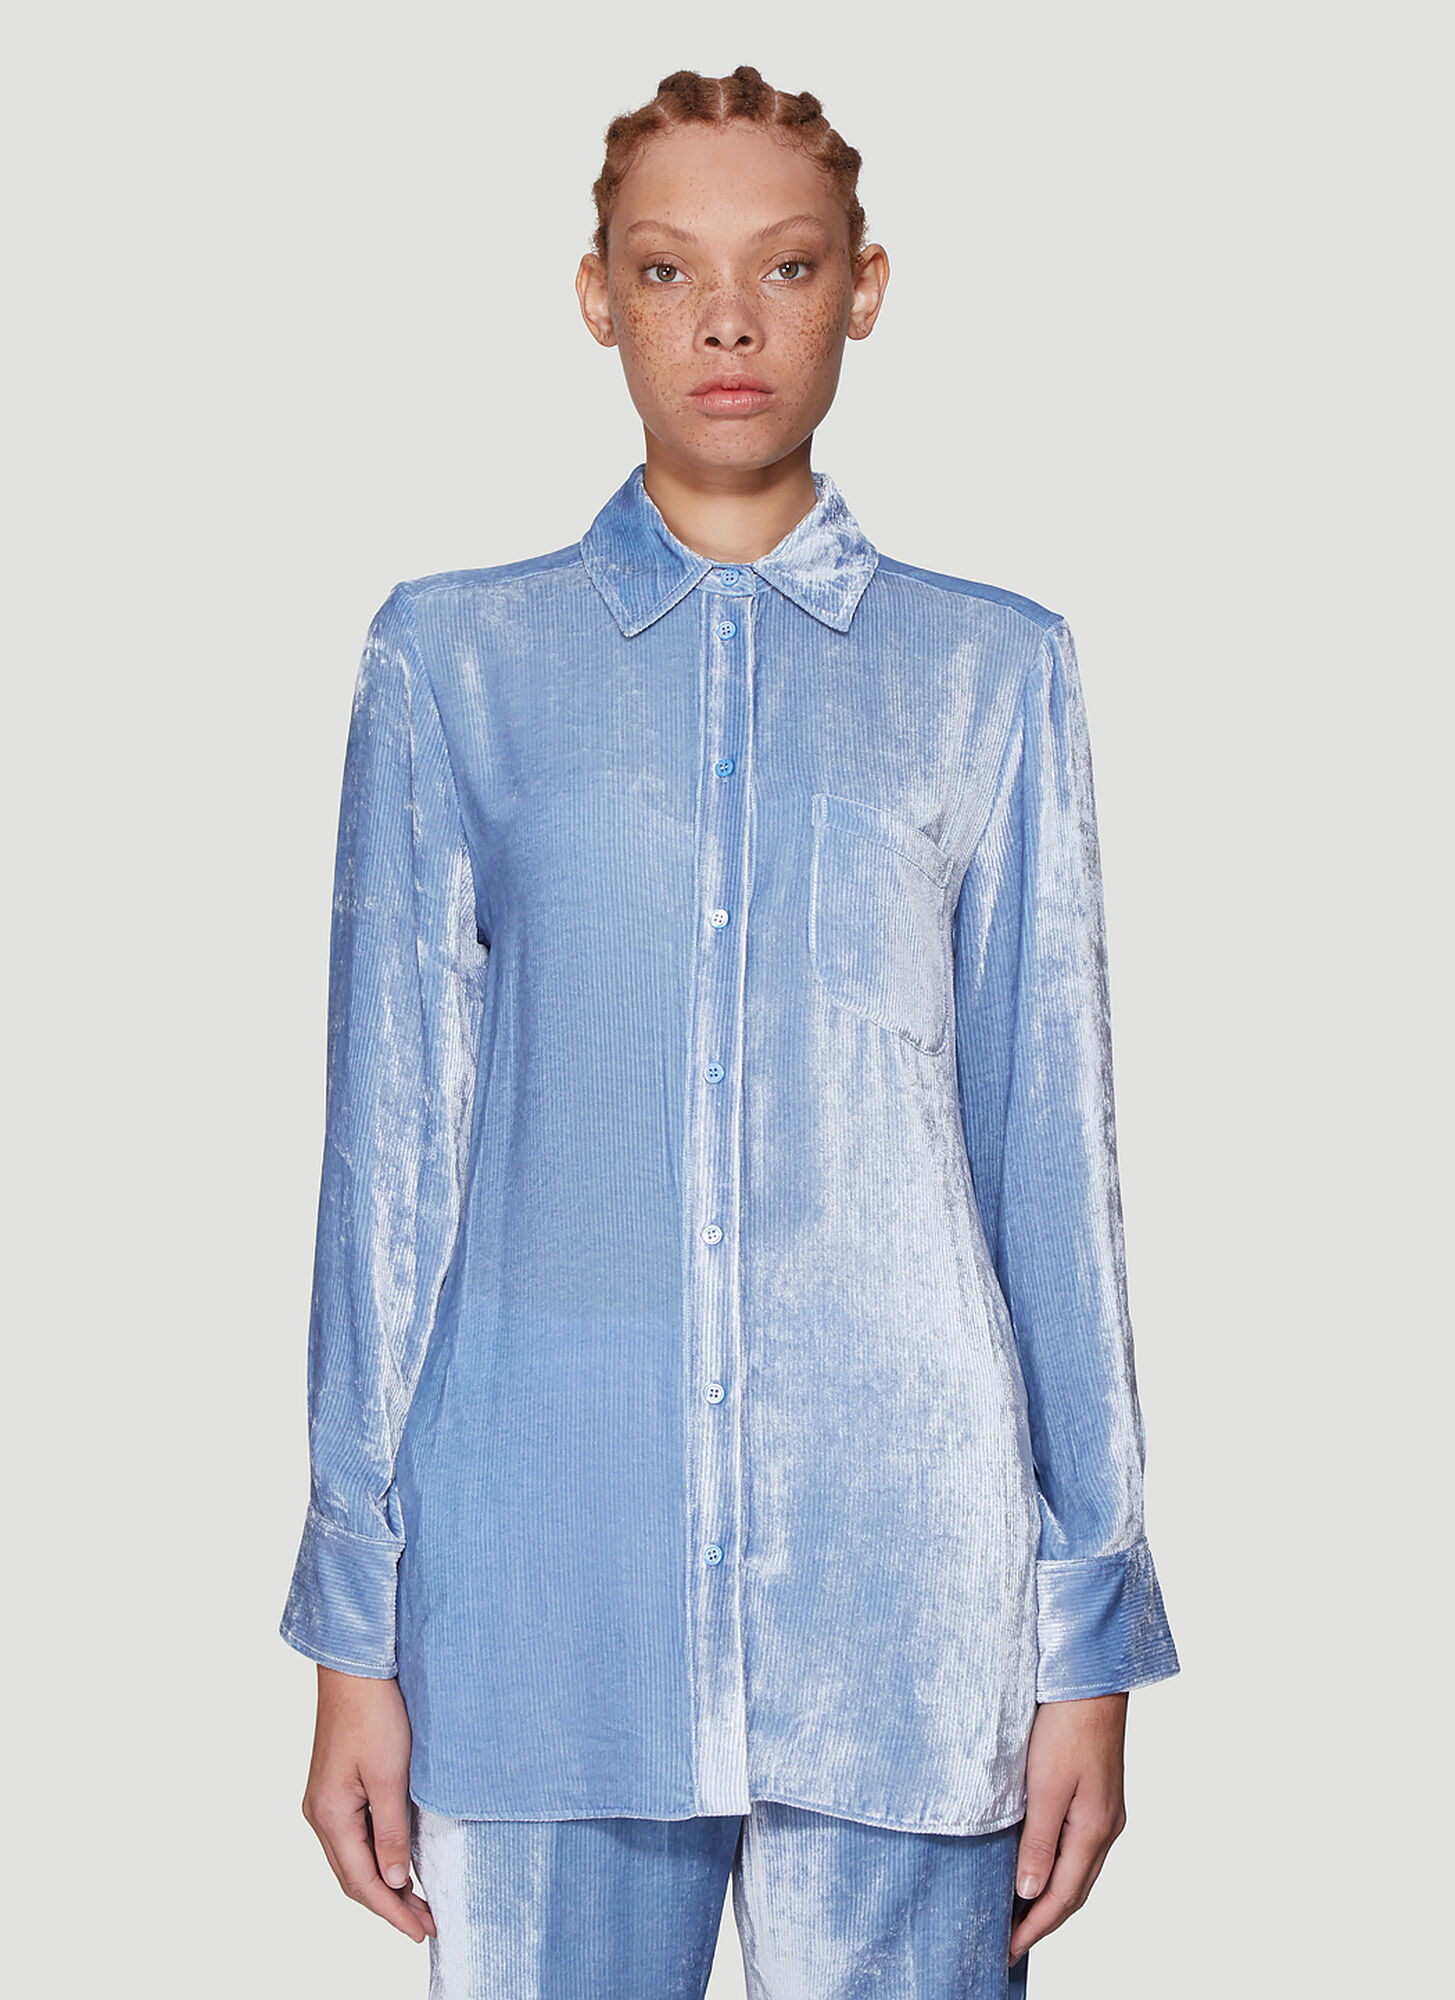 Sies Marjan Sander Fluid Corduroy Shirt in Blue